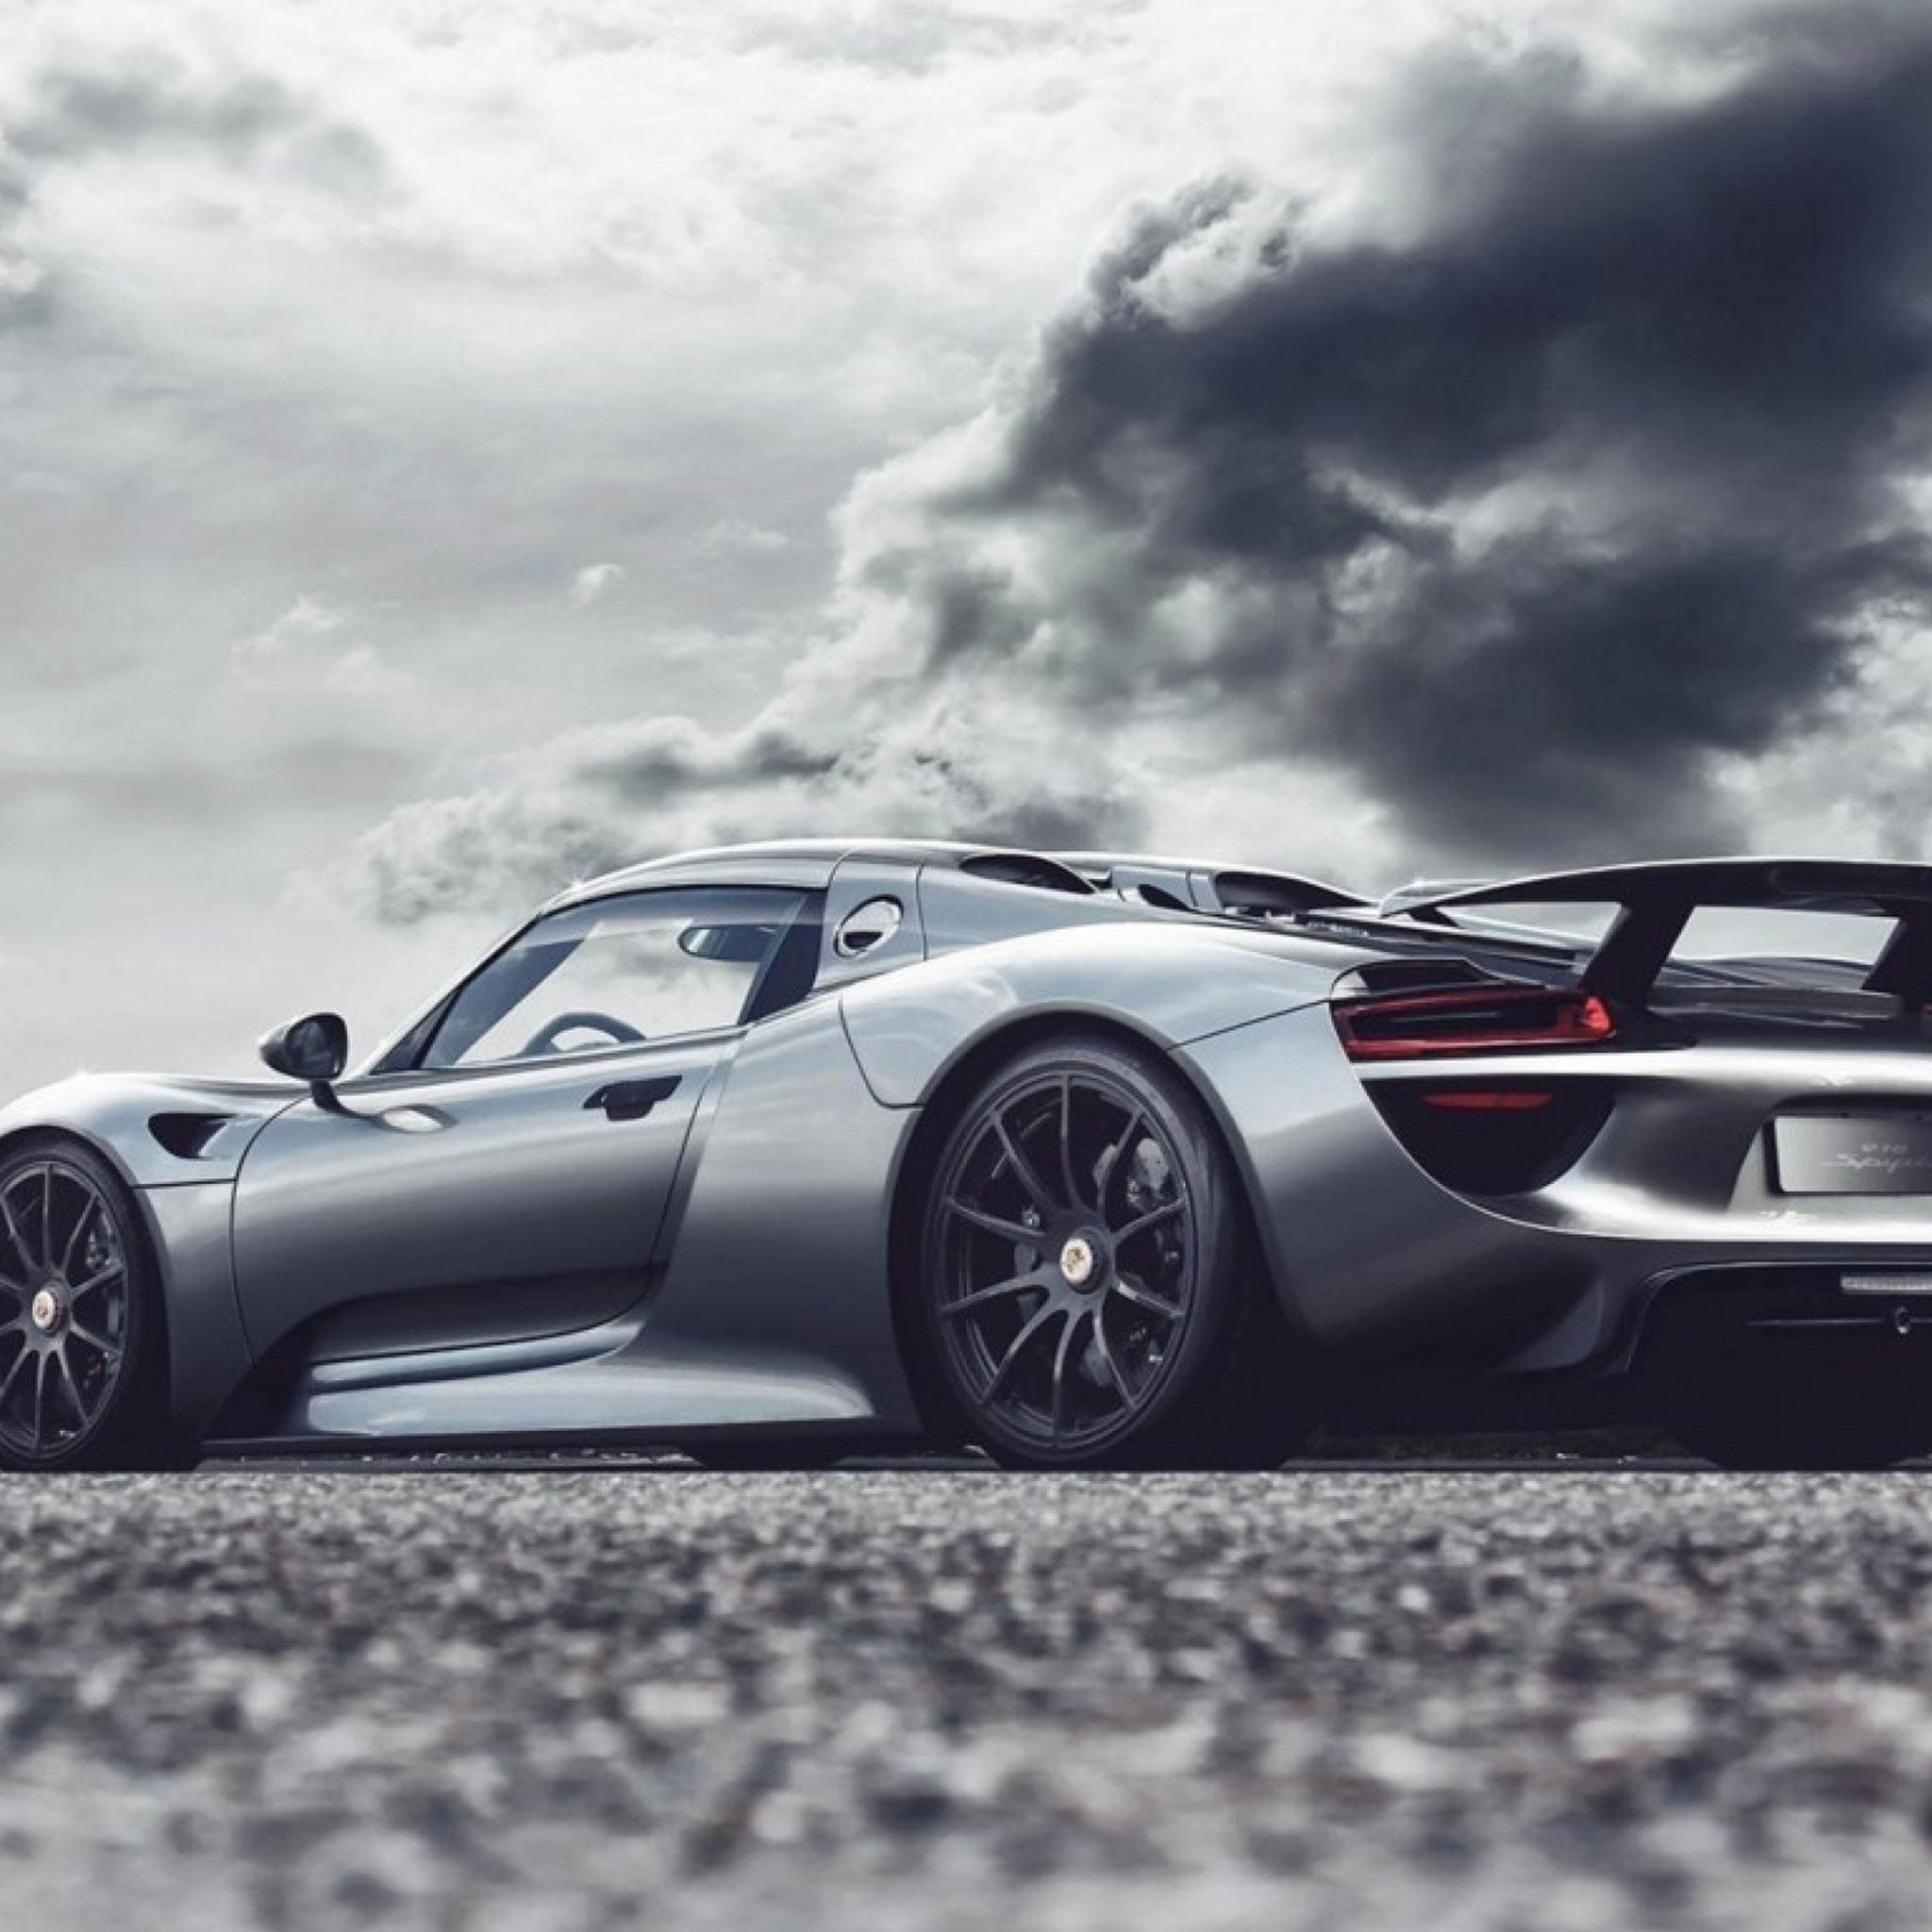 Porsche Super Car Wallpapers (58 Wallpapers)